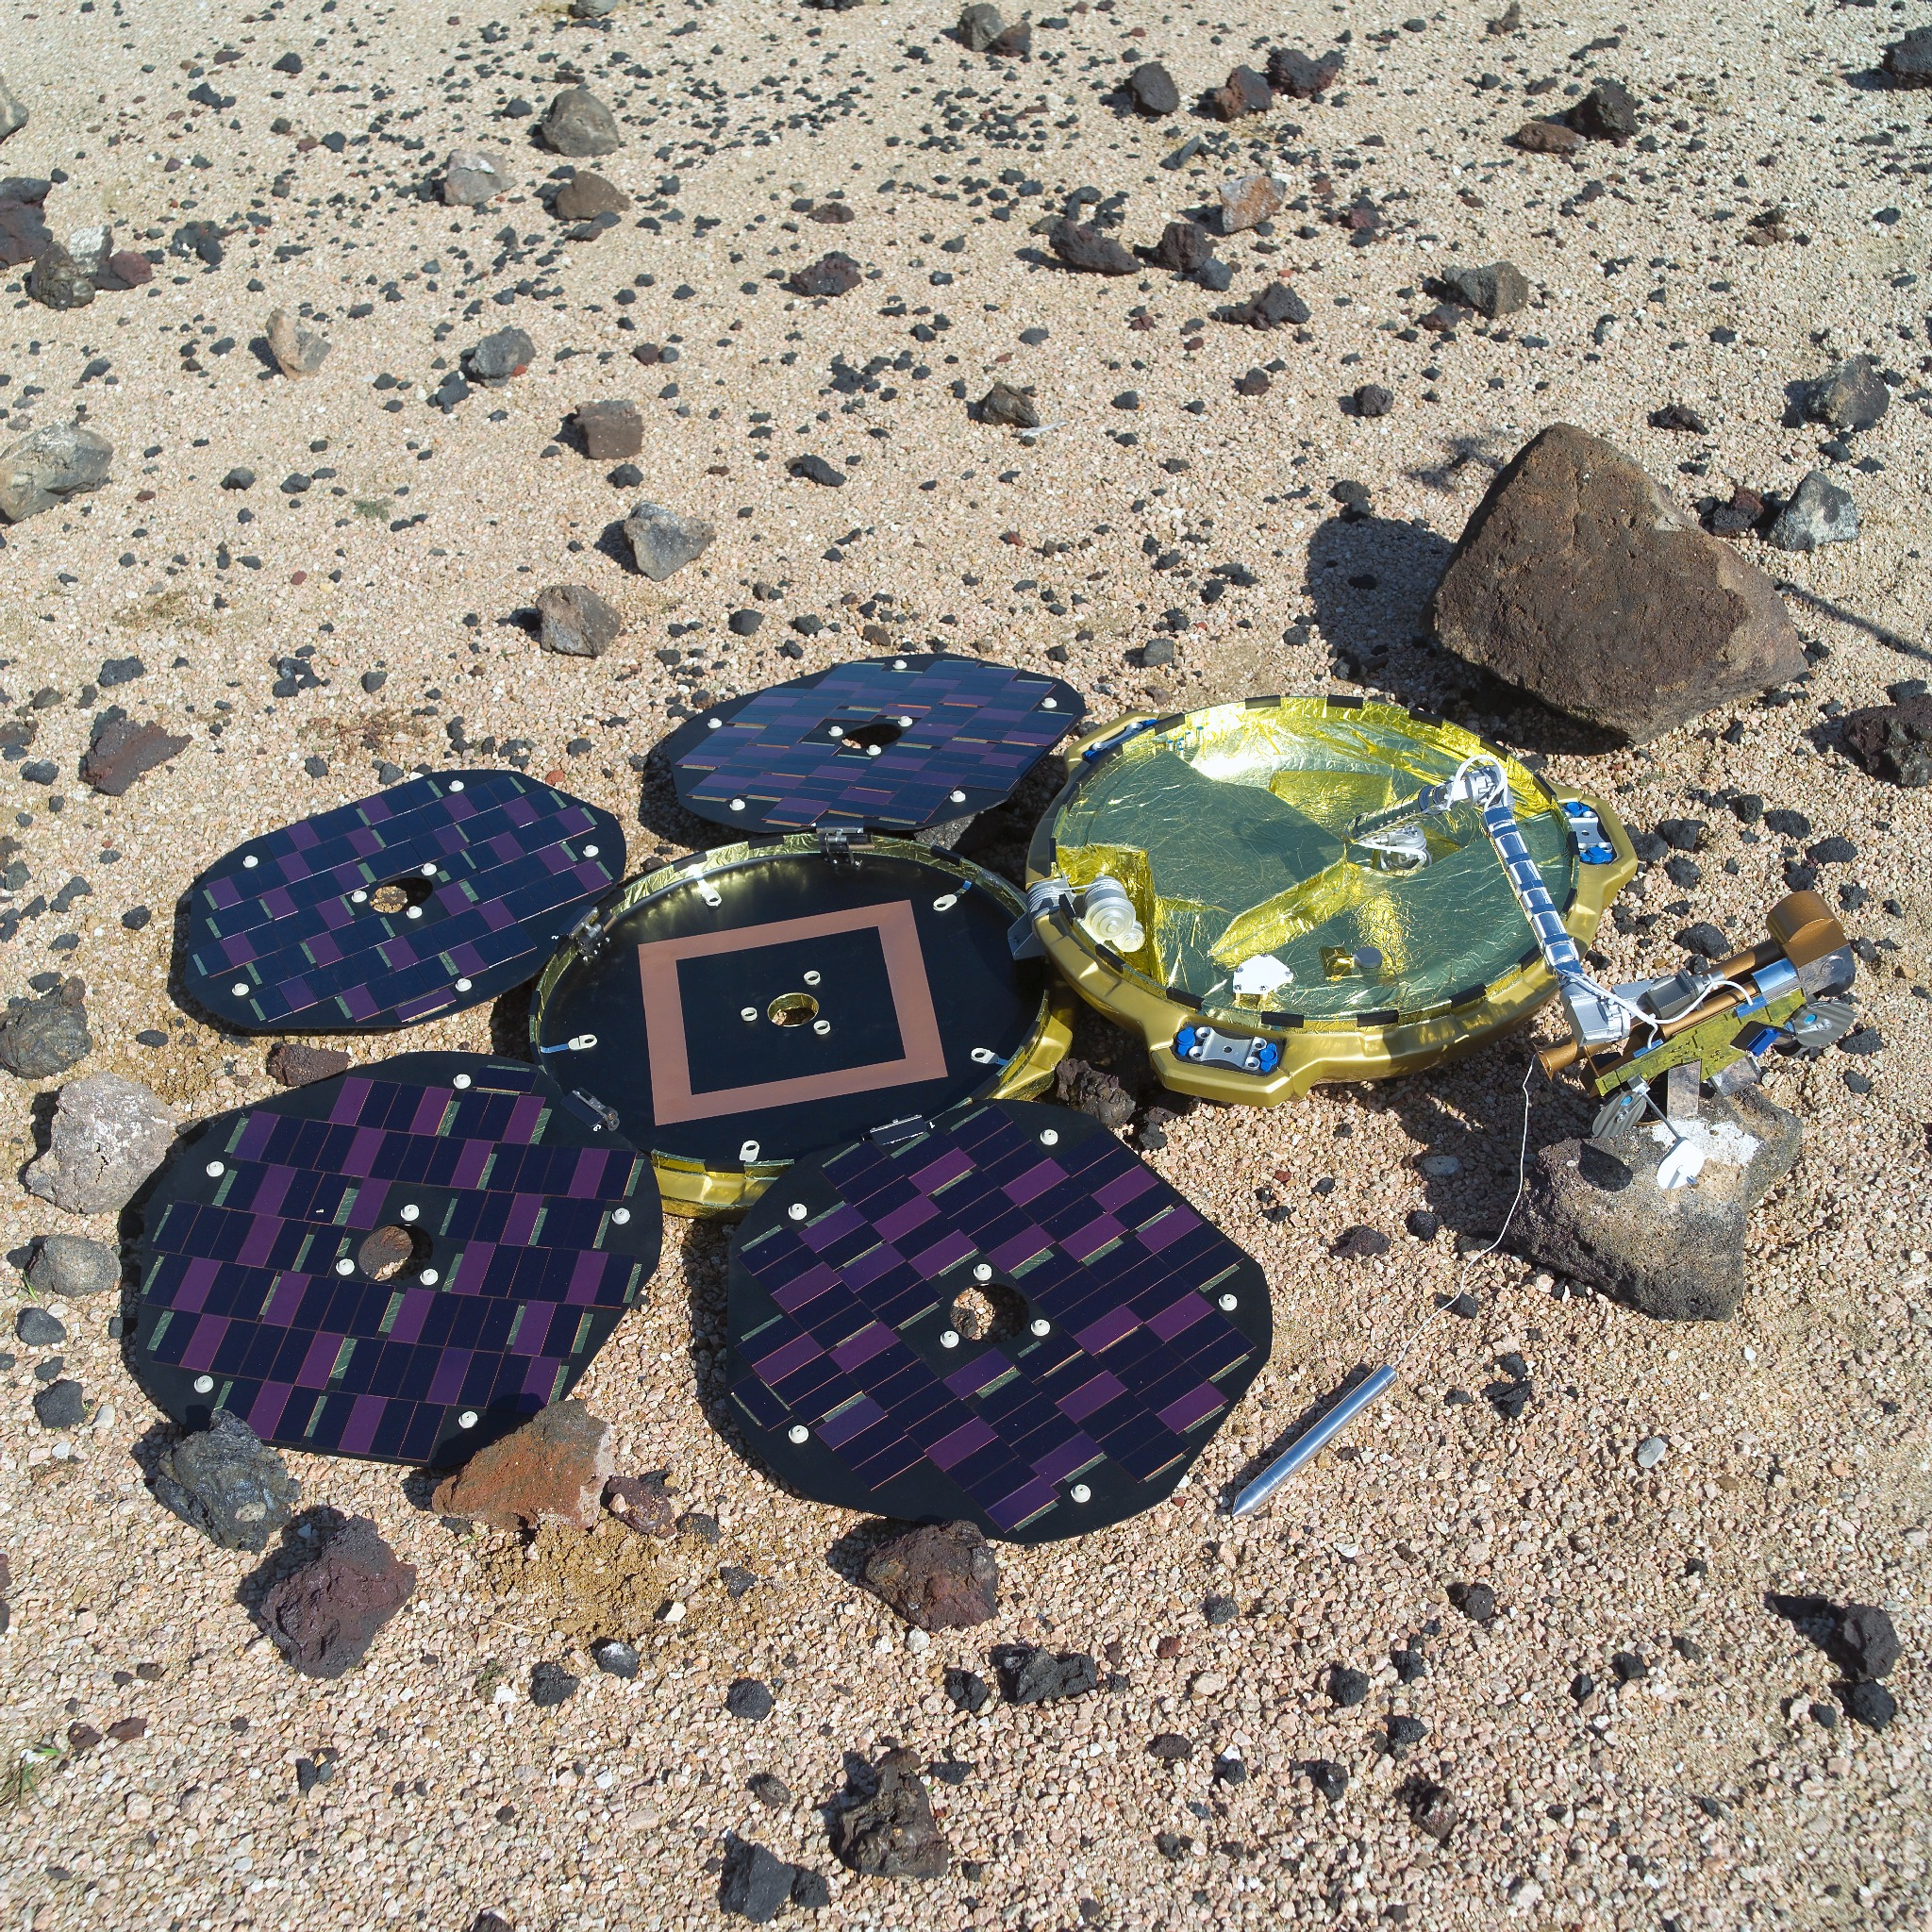 Has Europe's Long-Lost Beagle 2 Mars Lander Been Found?